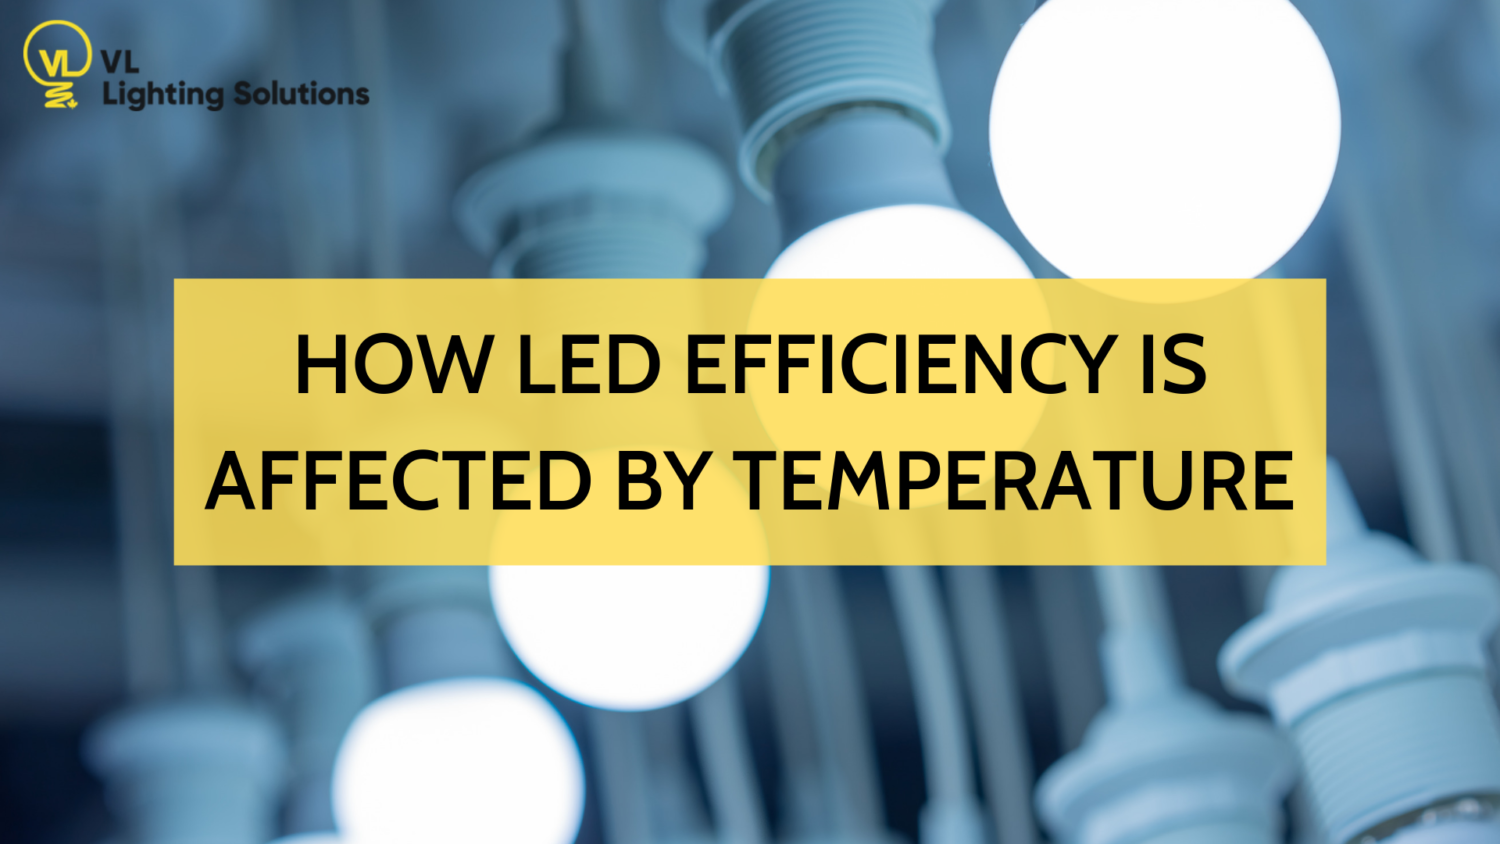 temperature affects LED efficiency